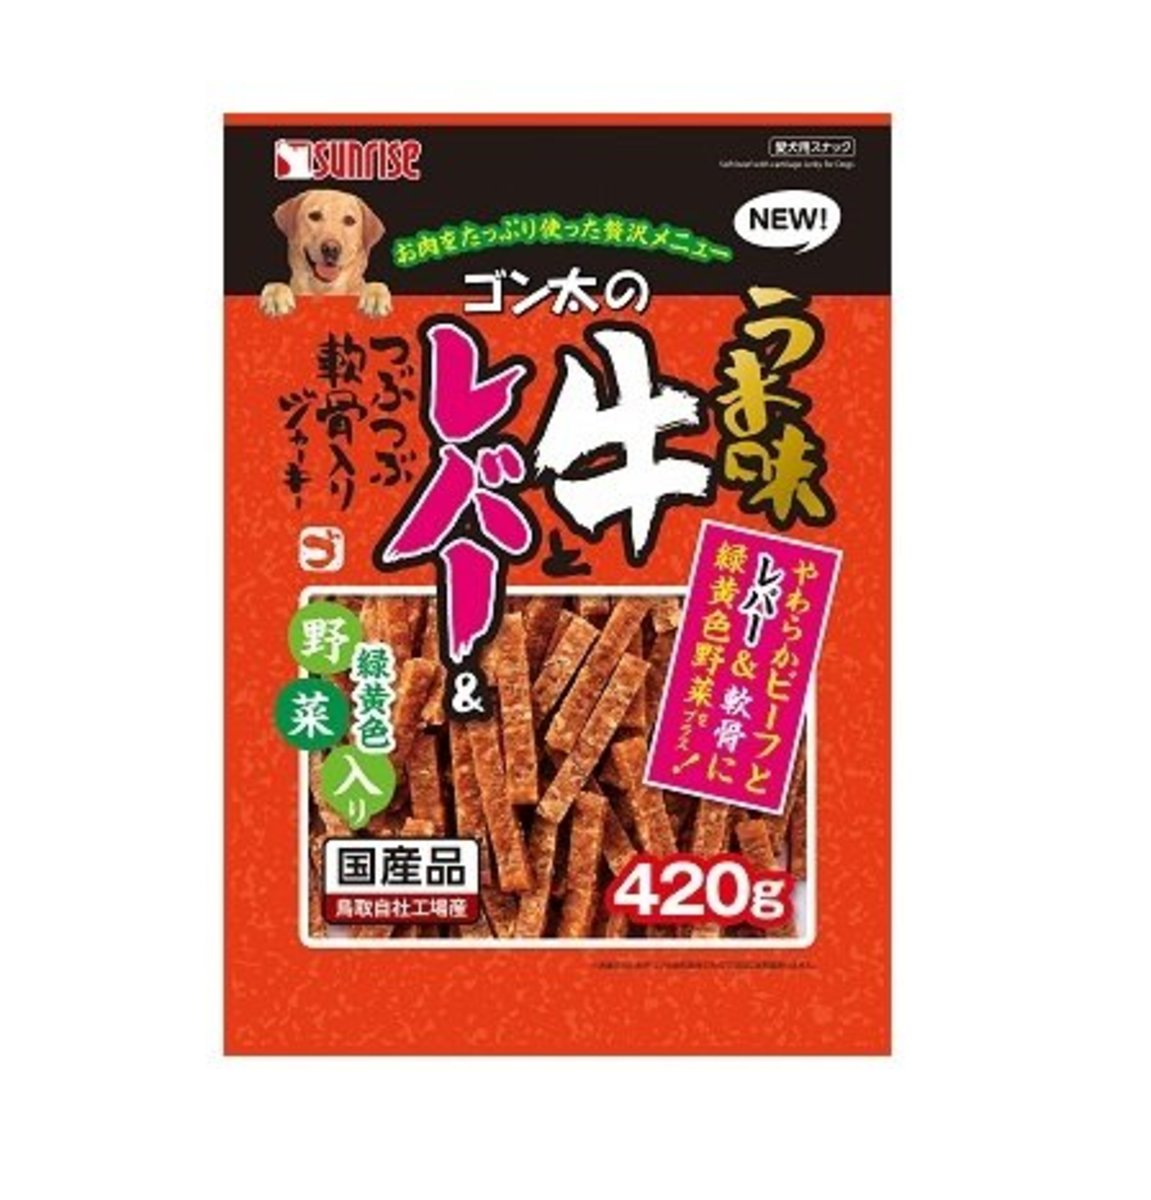 Soft beef jerky with liver and gristle for Dogs 420g